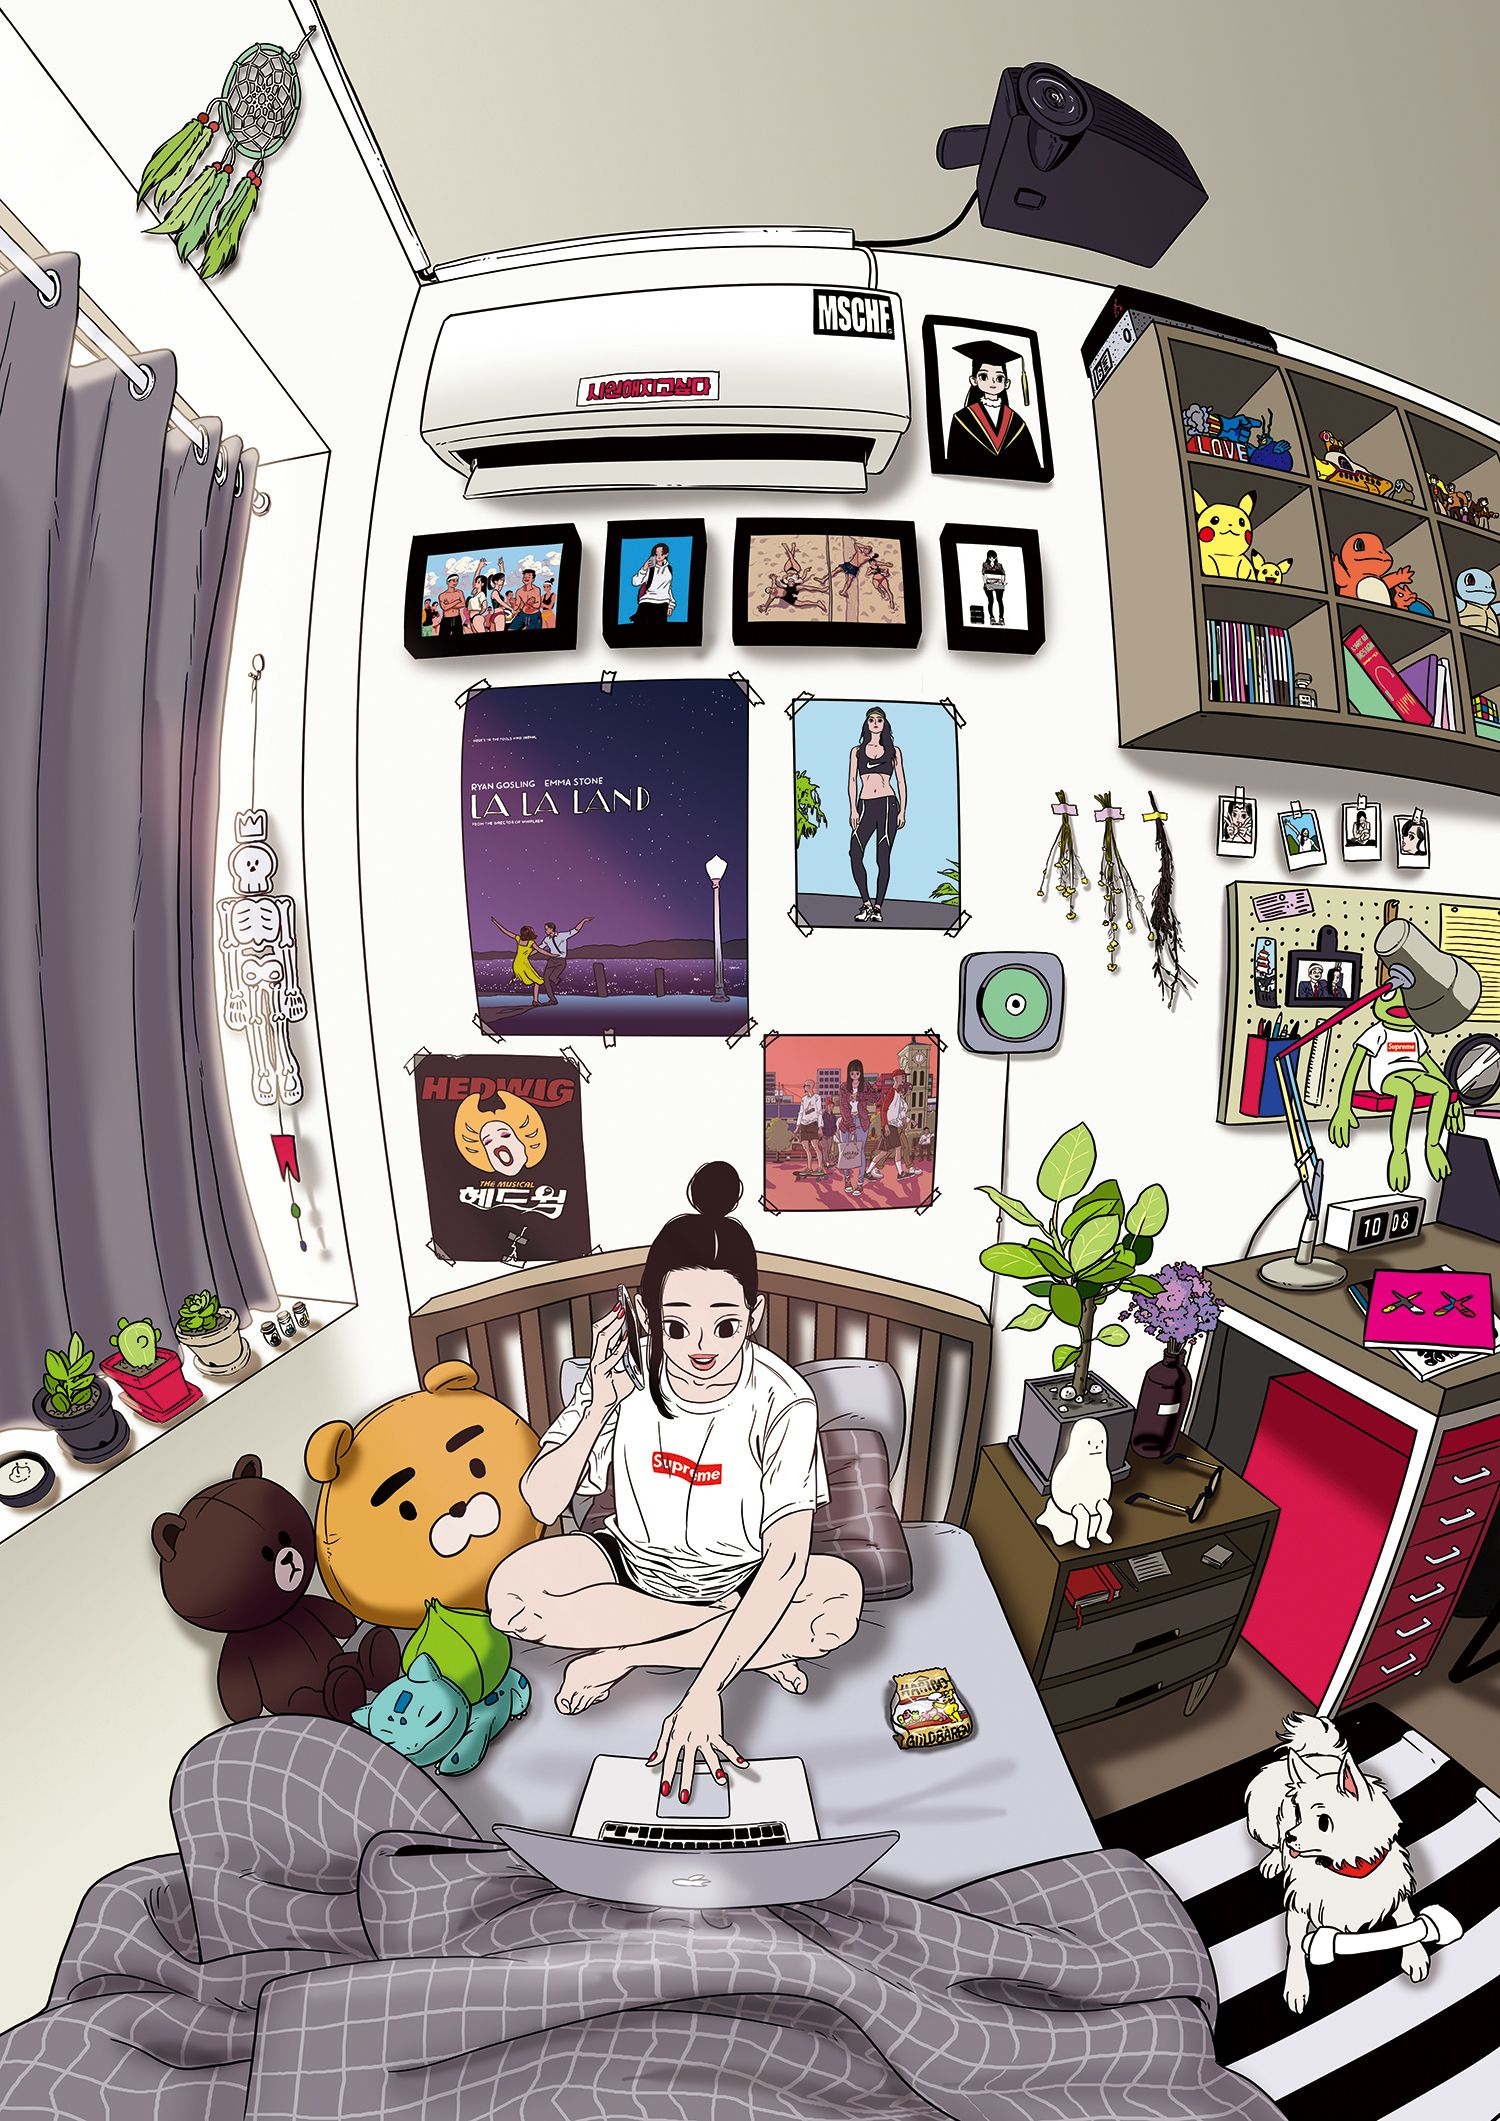 Cute Girly Wallpaper For Bedroom My Personal Work Sneakers Pinterest Anime